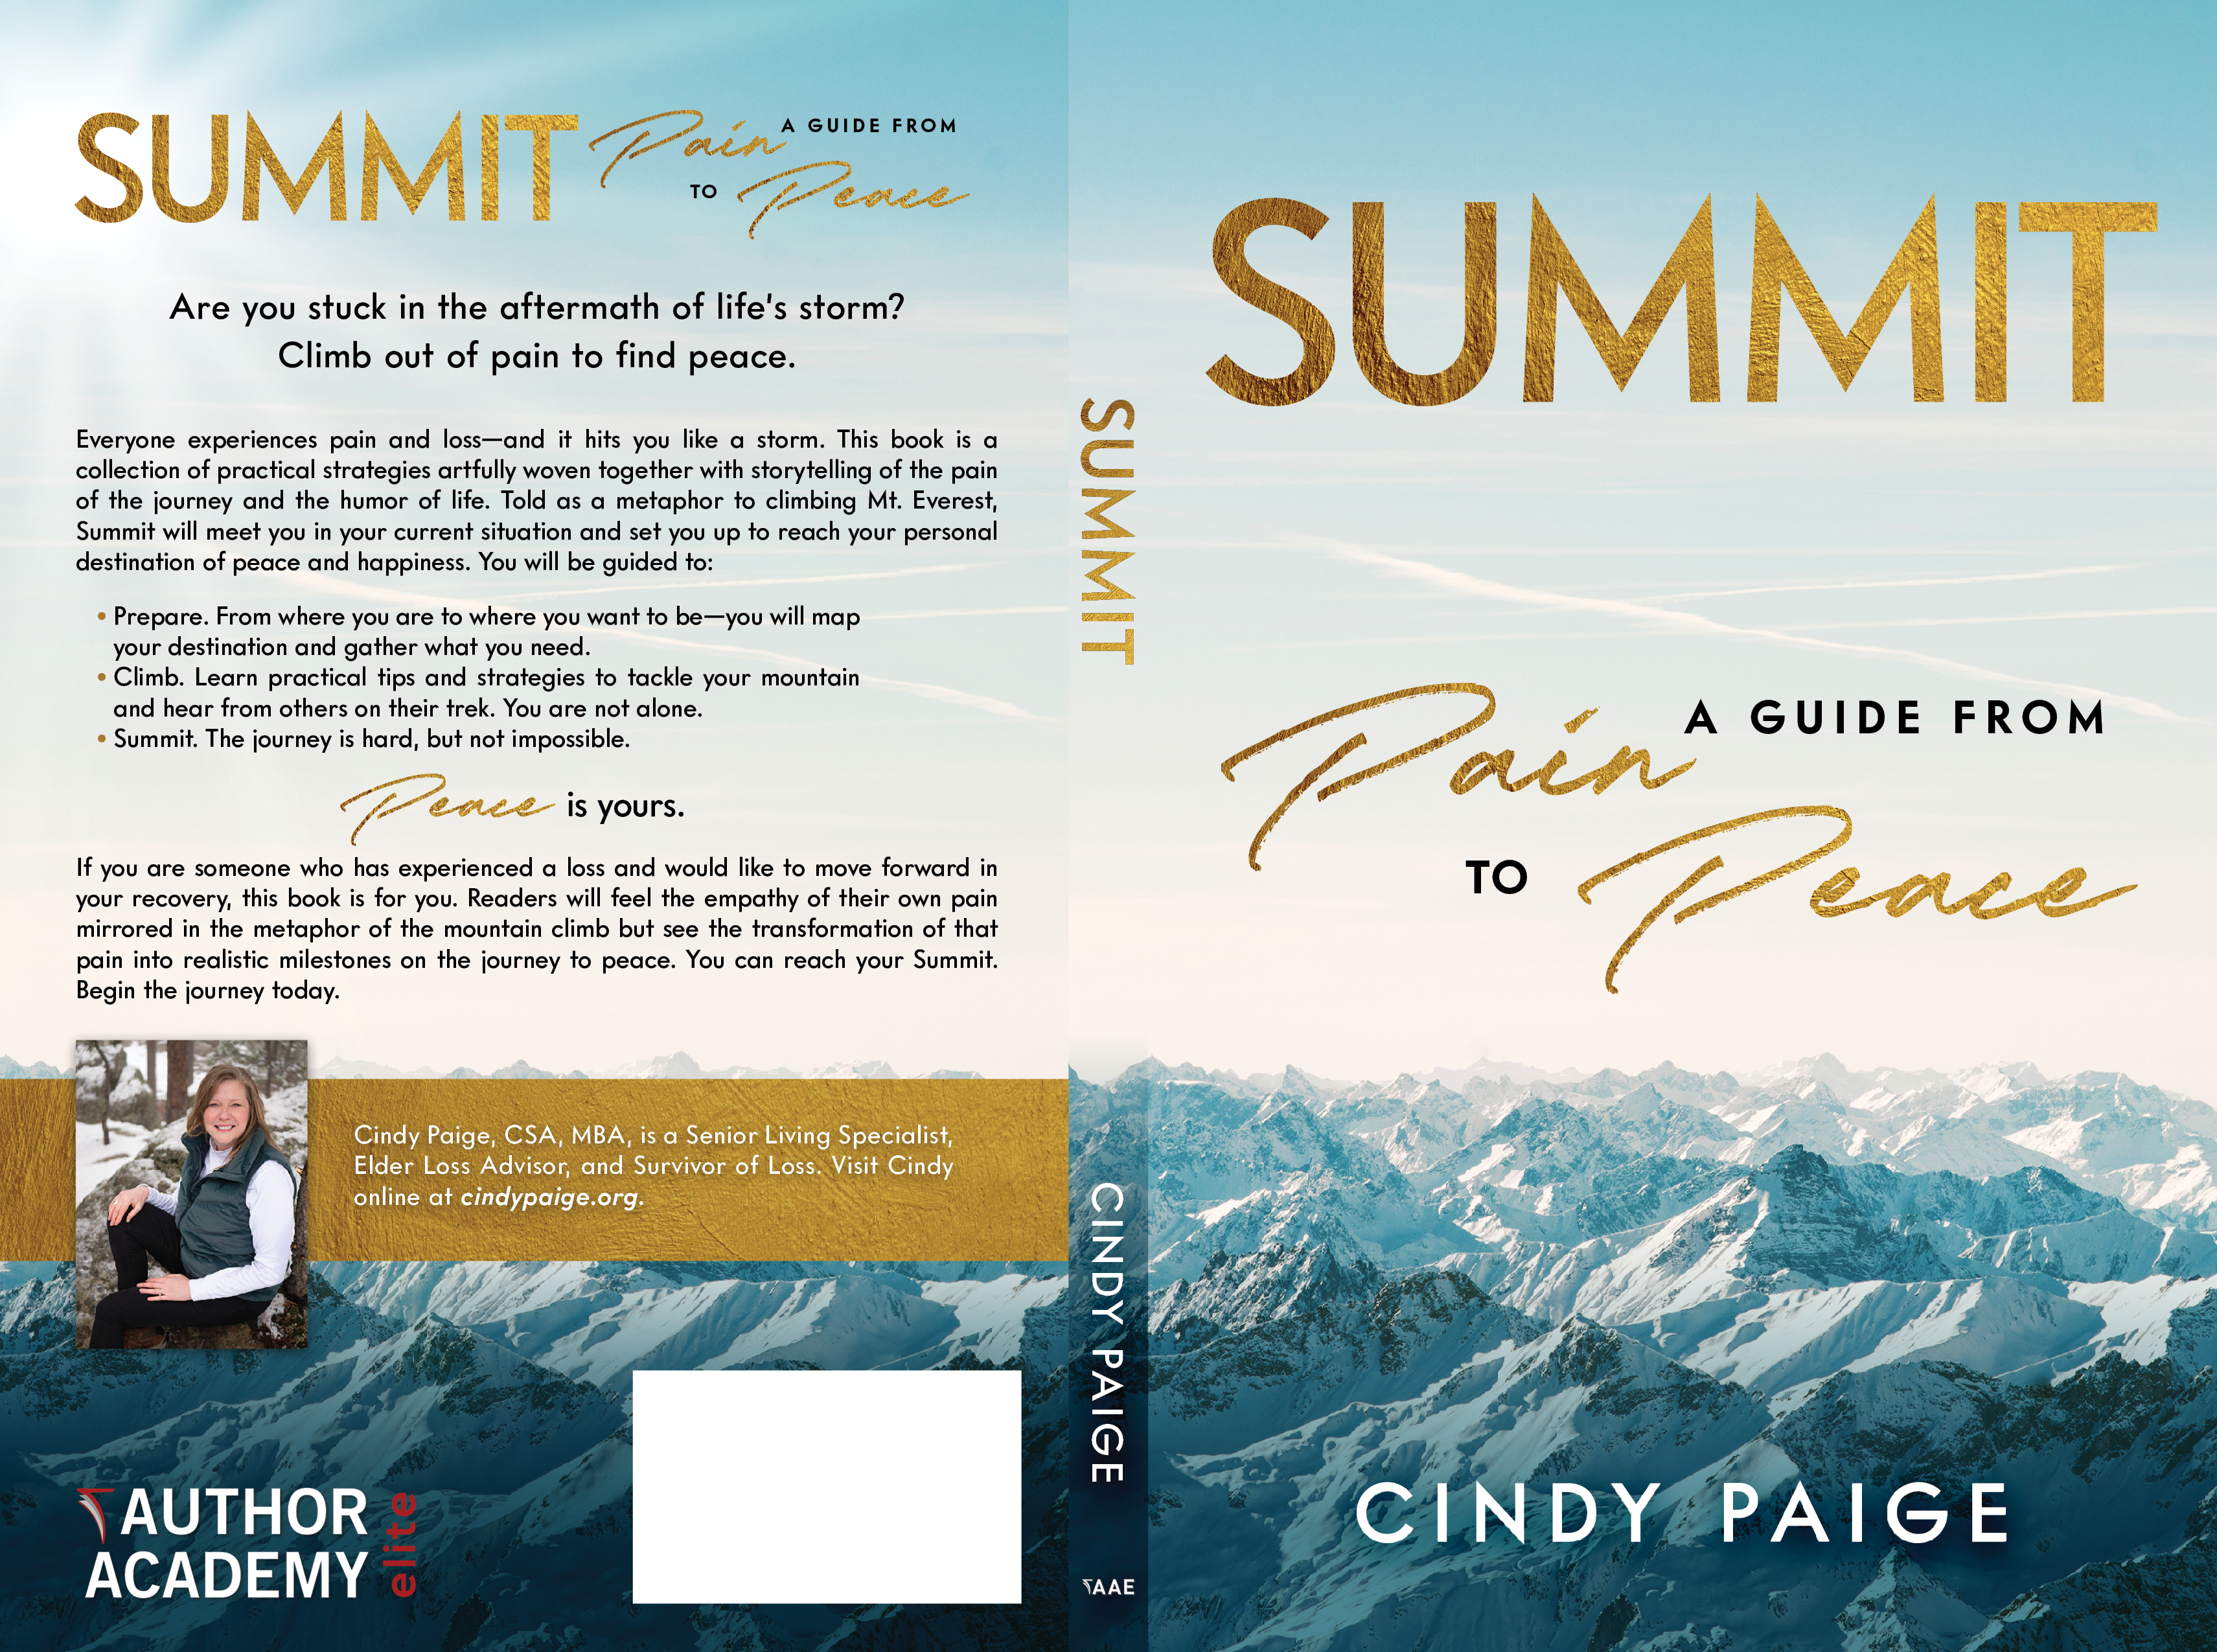 Create a nonfiction book cover with the potential for follow-up paid projects.